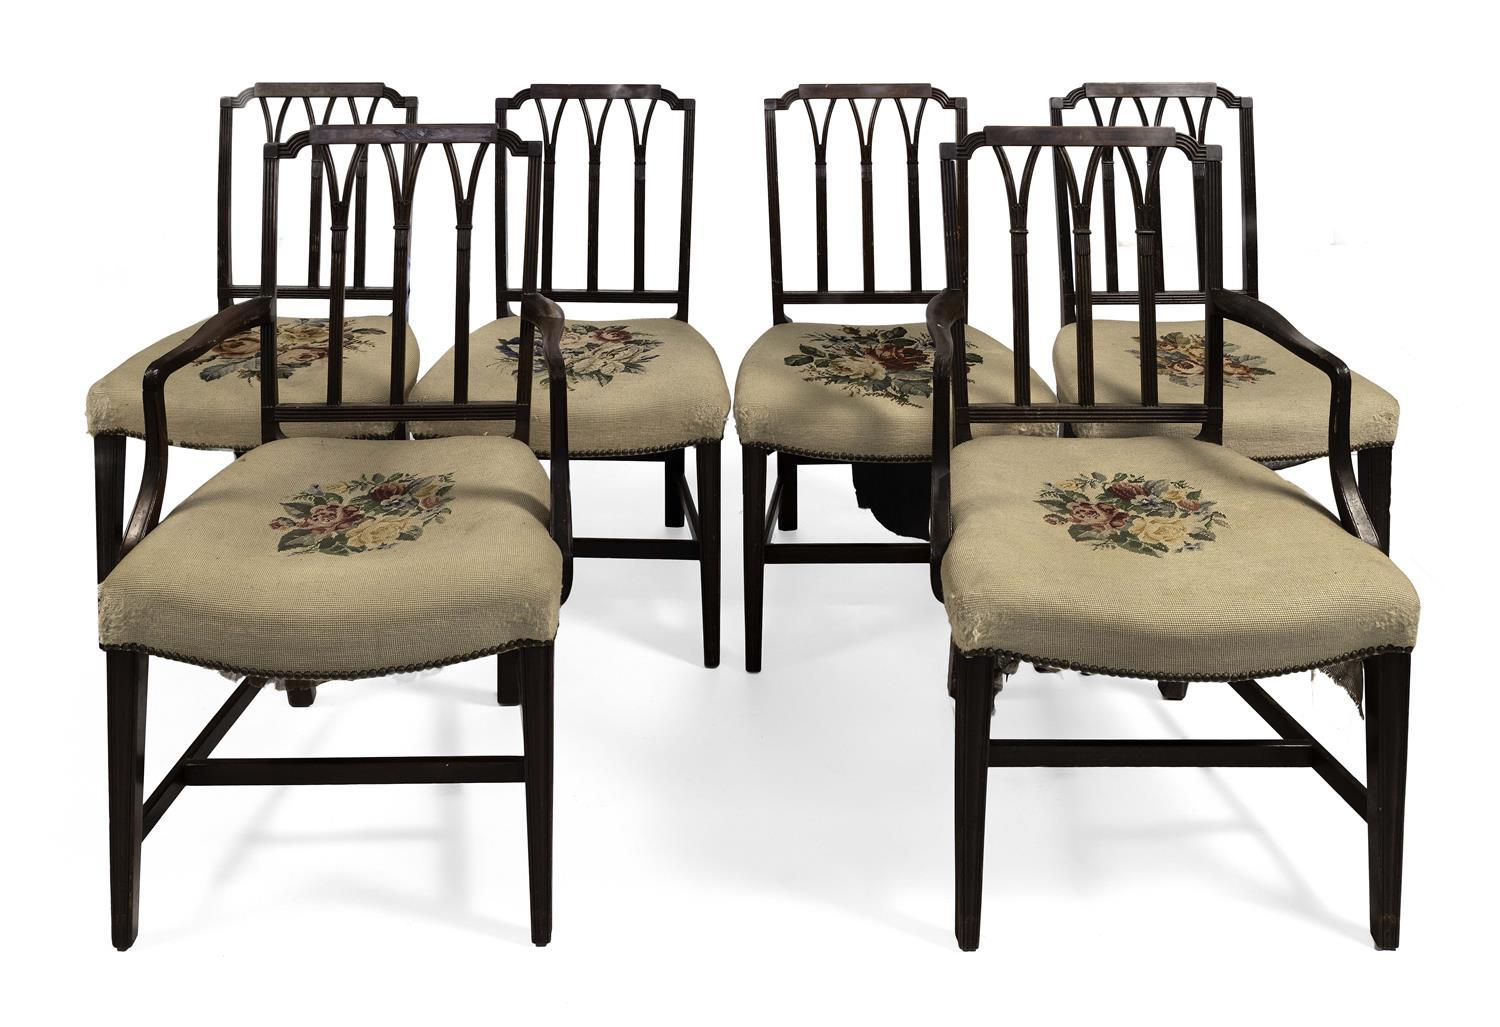 SET OF SIX FEDERAL PORTSMOUTH-STYLE DINING CHAIRS Two armchairs and four side chairs. In mahogany. Backs with low flat crest rails a...